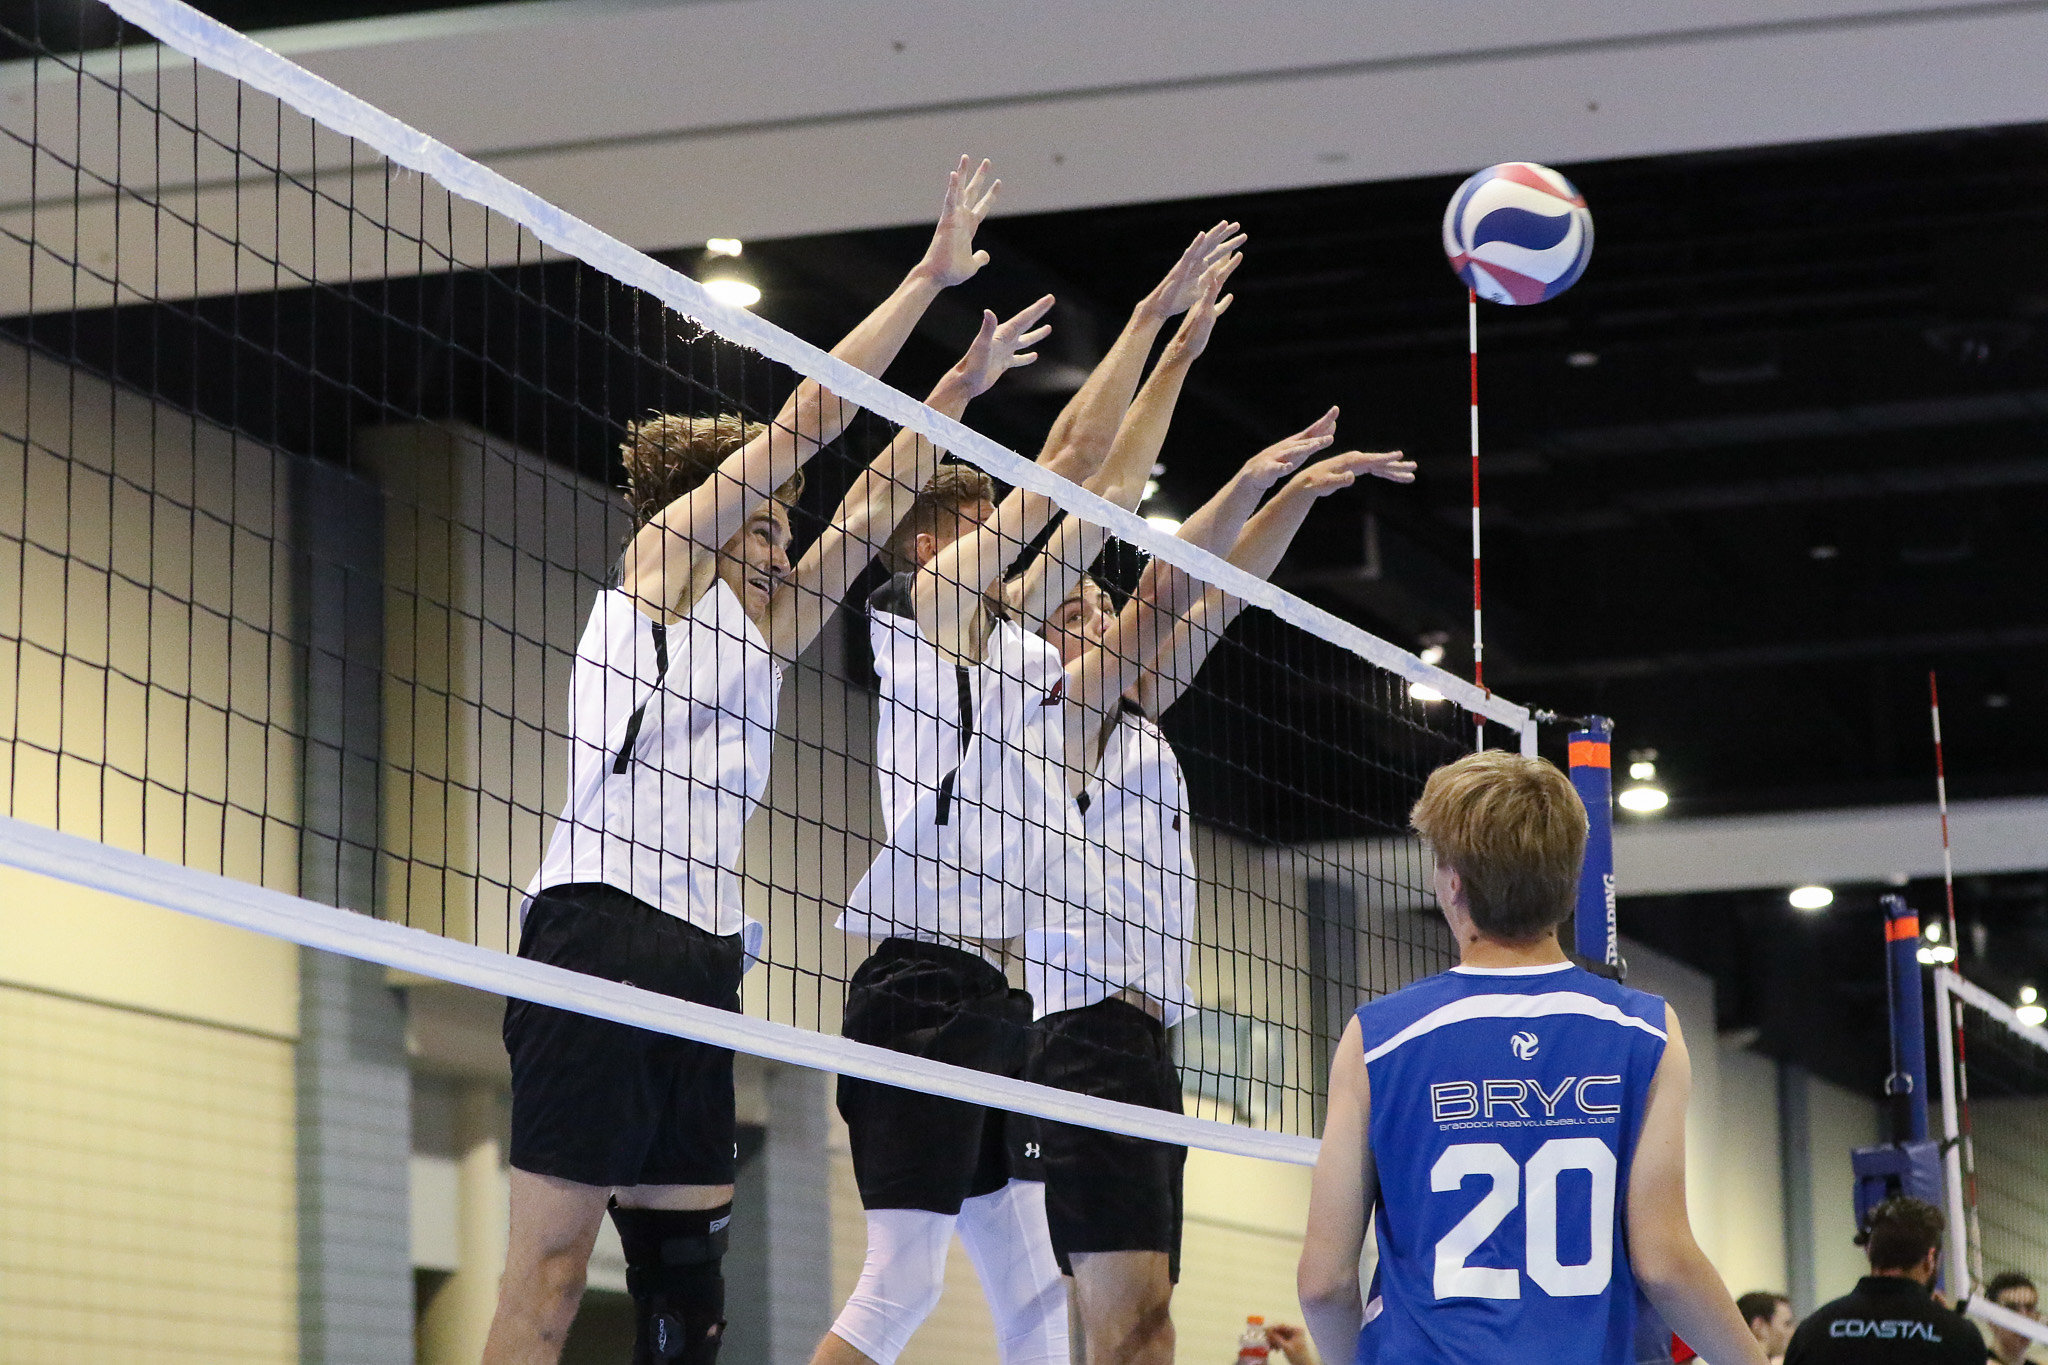 Volleyball Championships To Be Settled At Richmond Volleyball Club